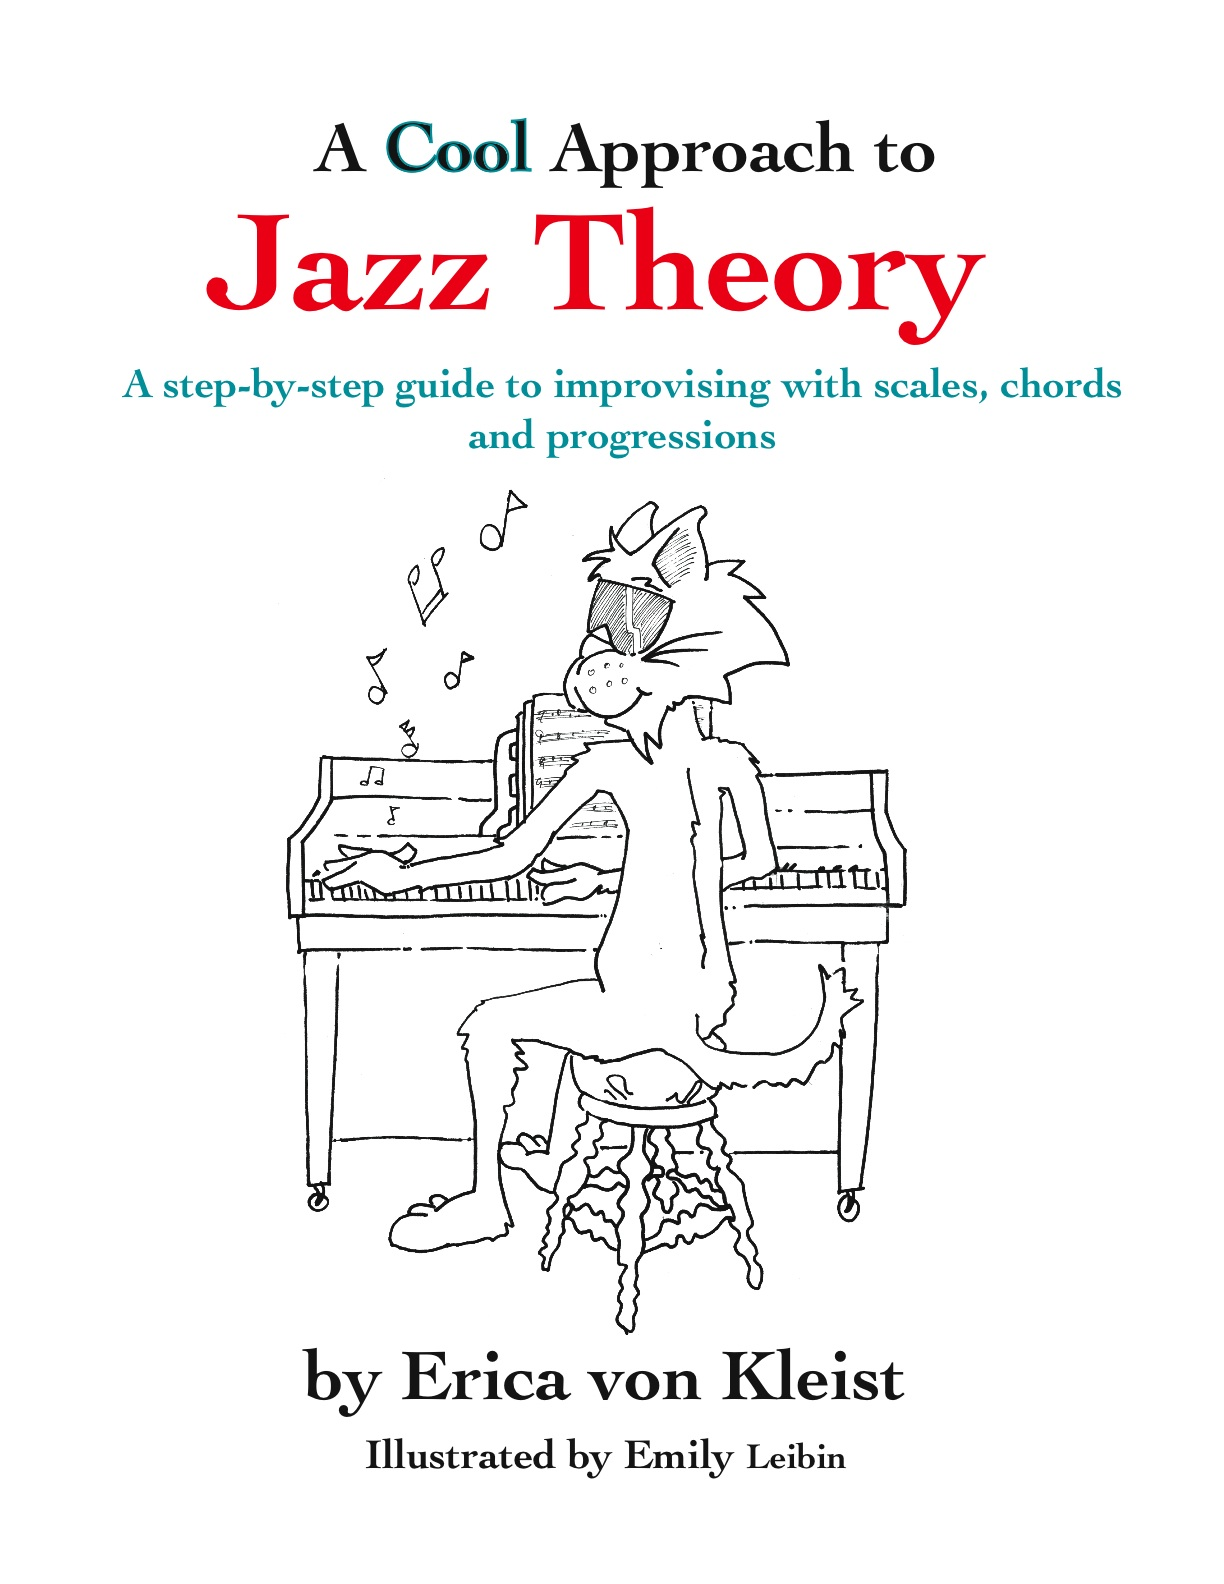 Erica Von Kleist's a Cool Approach to Jazz Theory